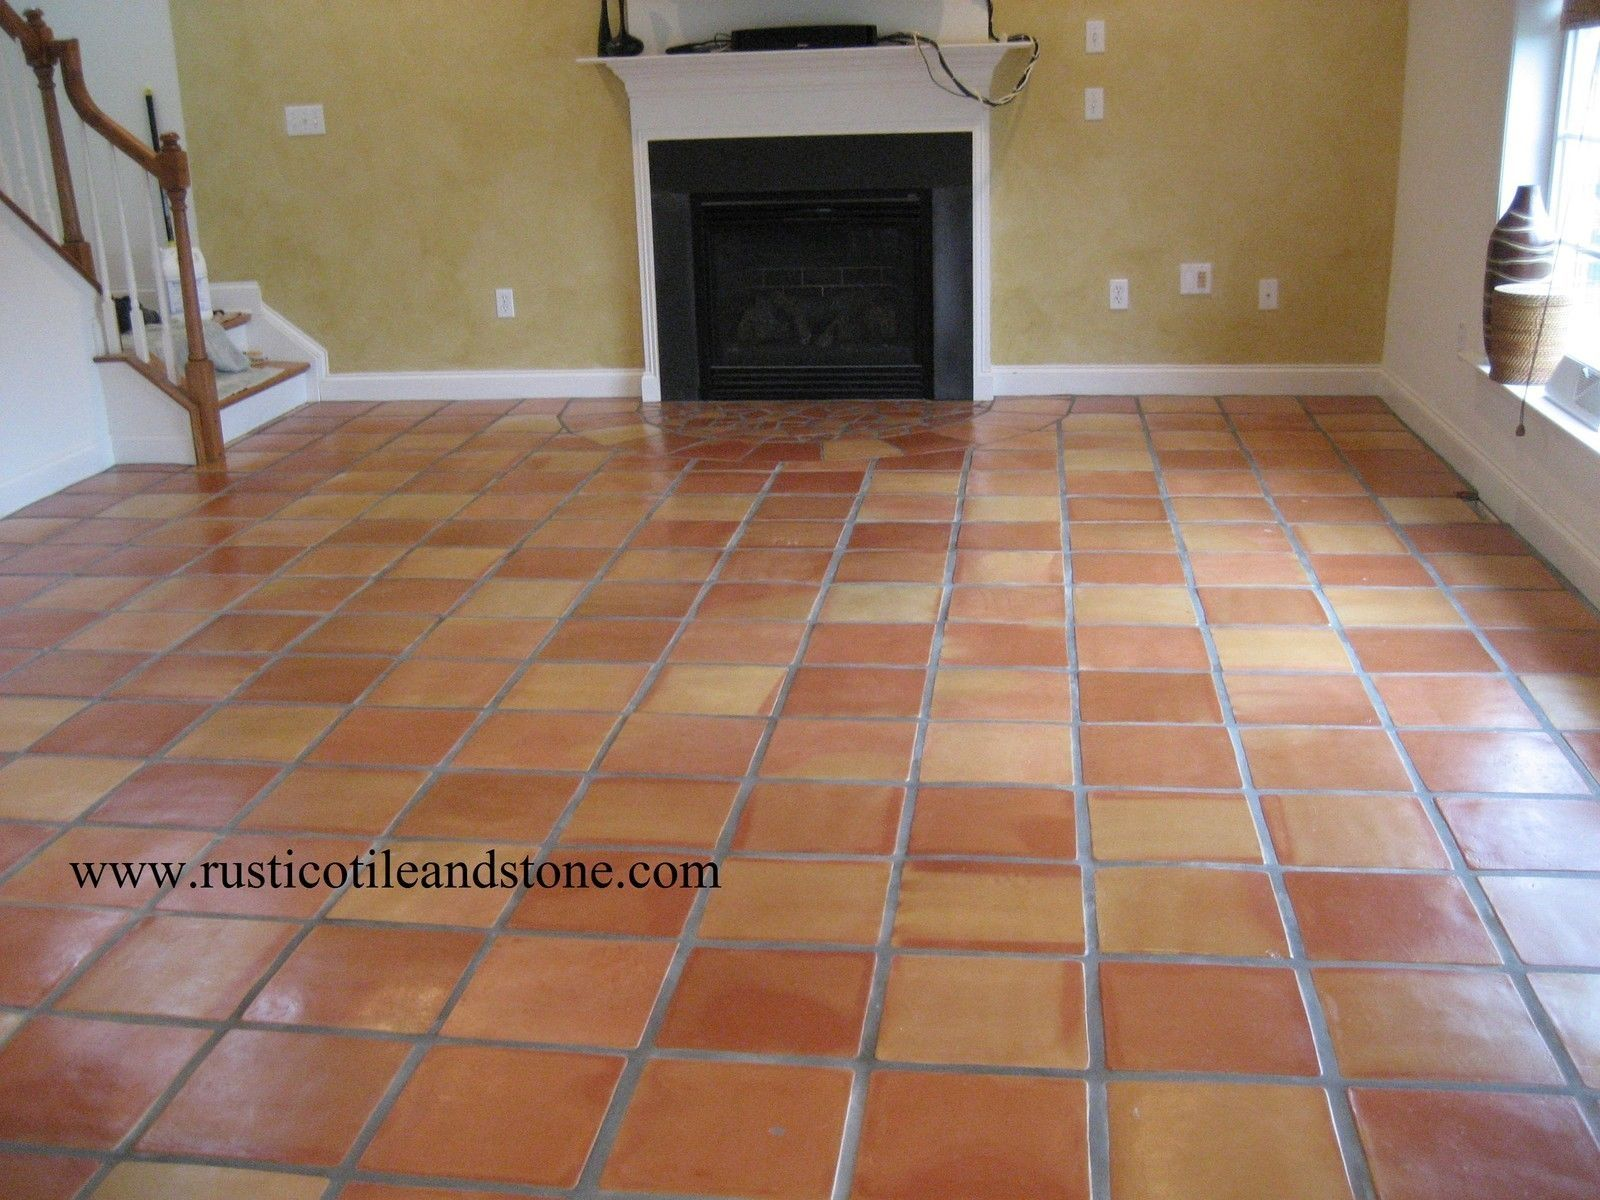 Mission red terracotta floor tile httpnextsoft21 tile flooring dailygadgetfo Image collections